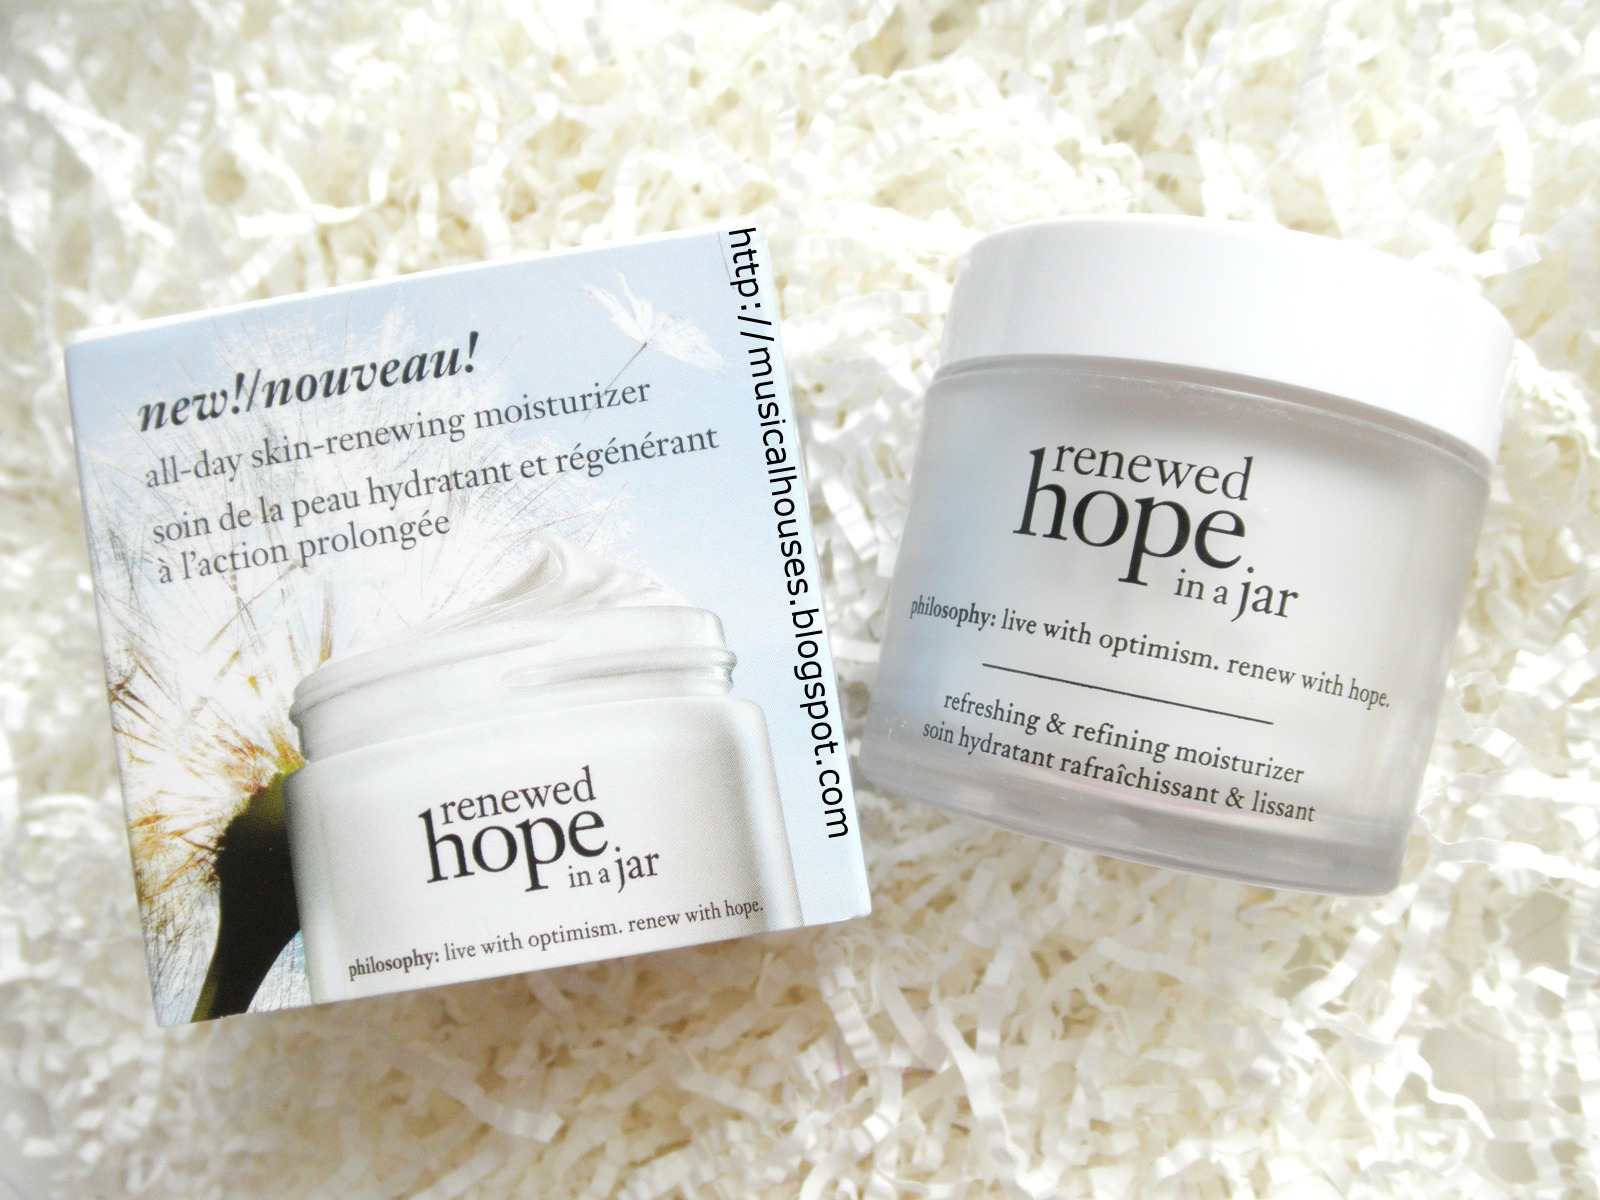 philosophy Renewed Hope in a Jar Moisturiser 60ml instagram的圖片搜尋結果